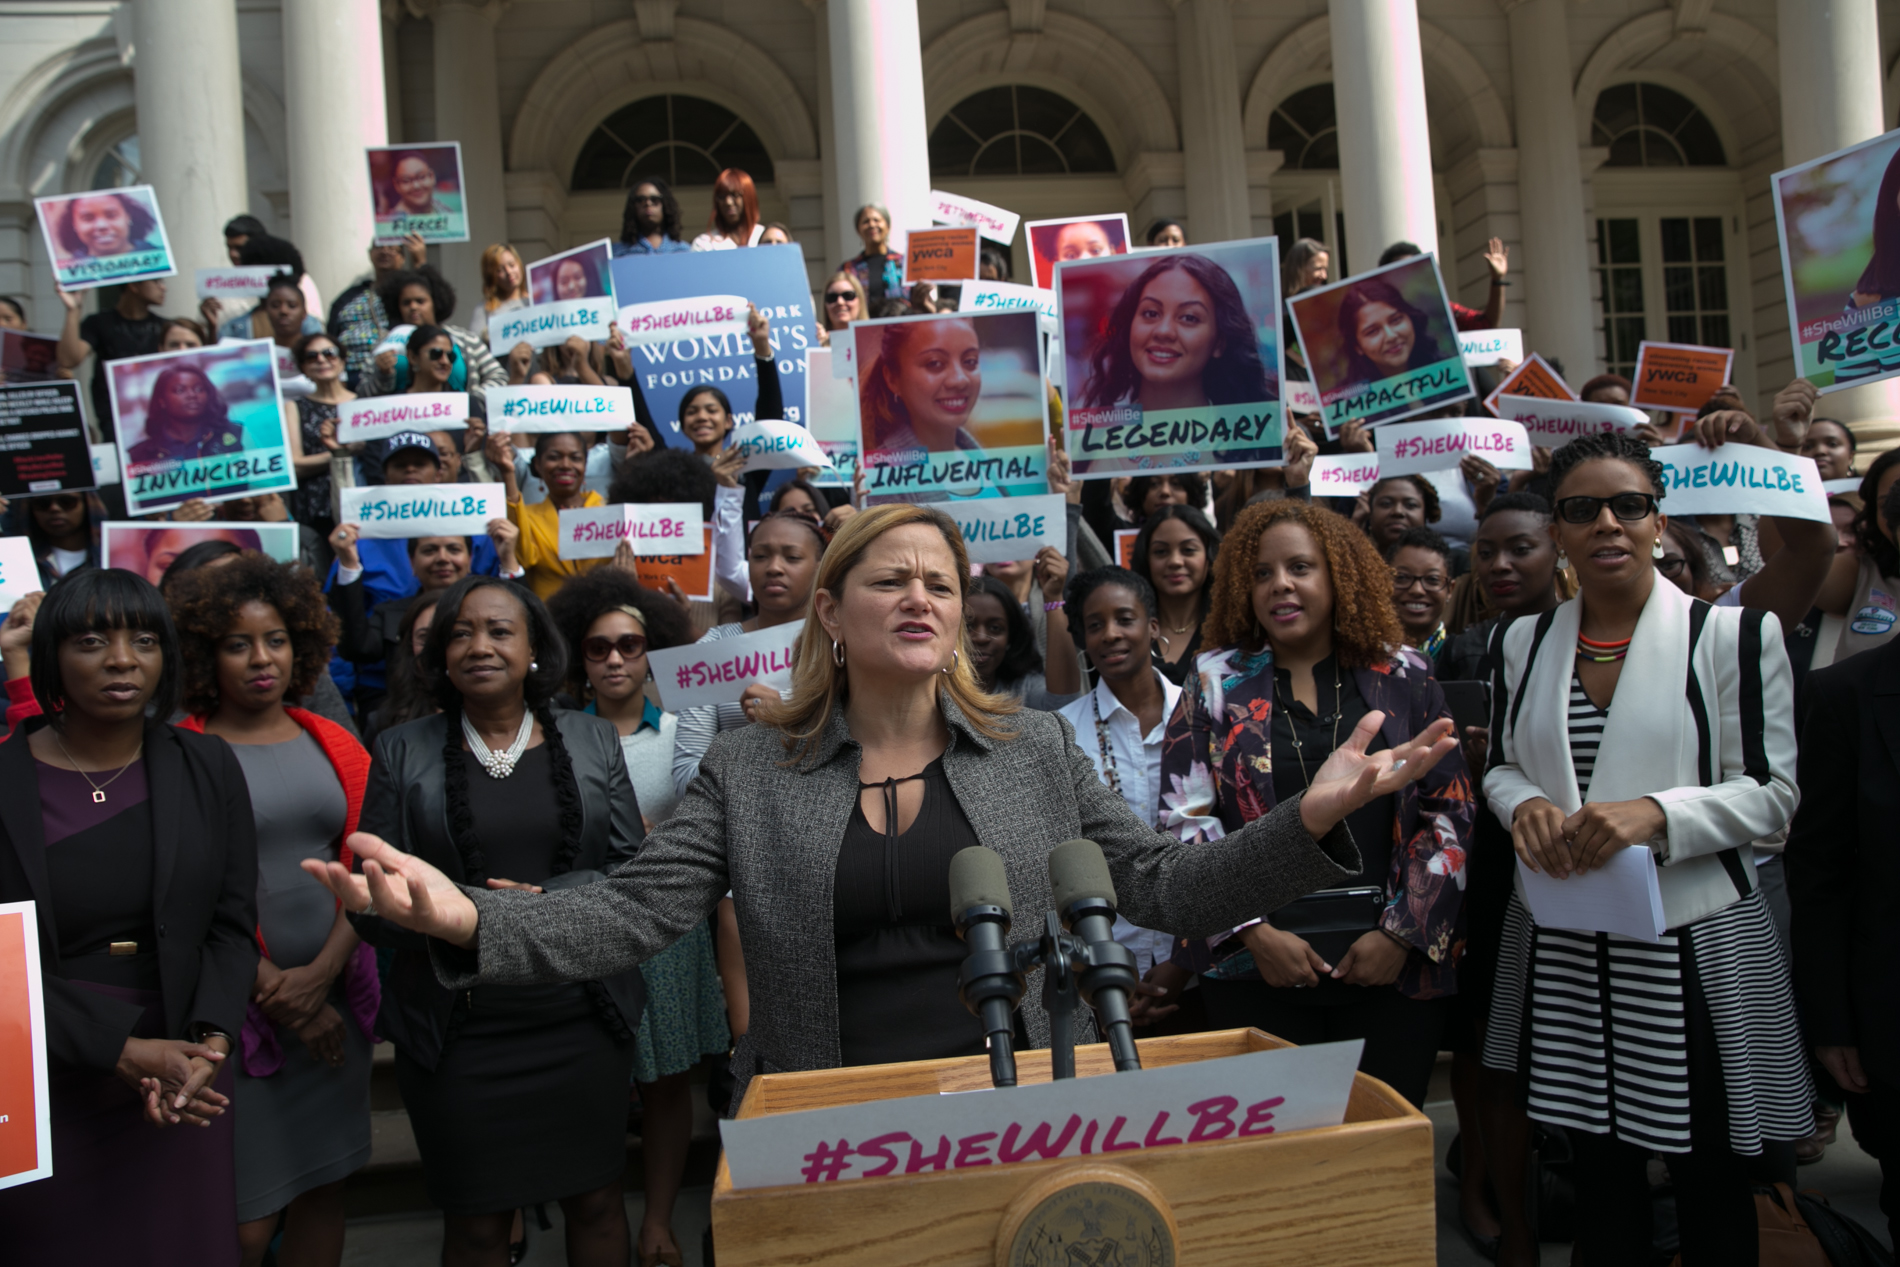 Council Speaker Melissa Mark-Viverito launches the Young Women's Initiative on the steps of City Hall. (Photo: William Alatriste for New York City Council)